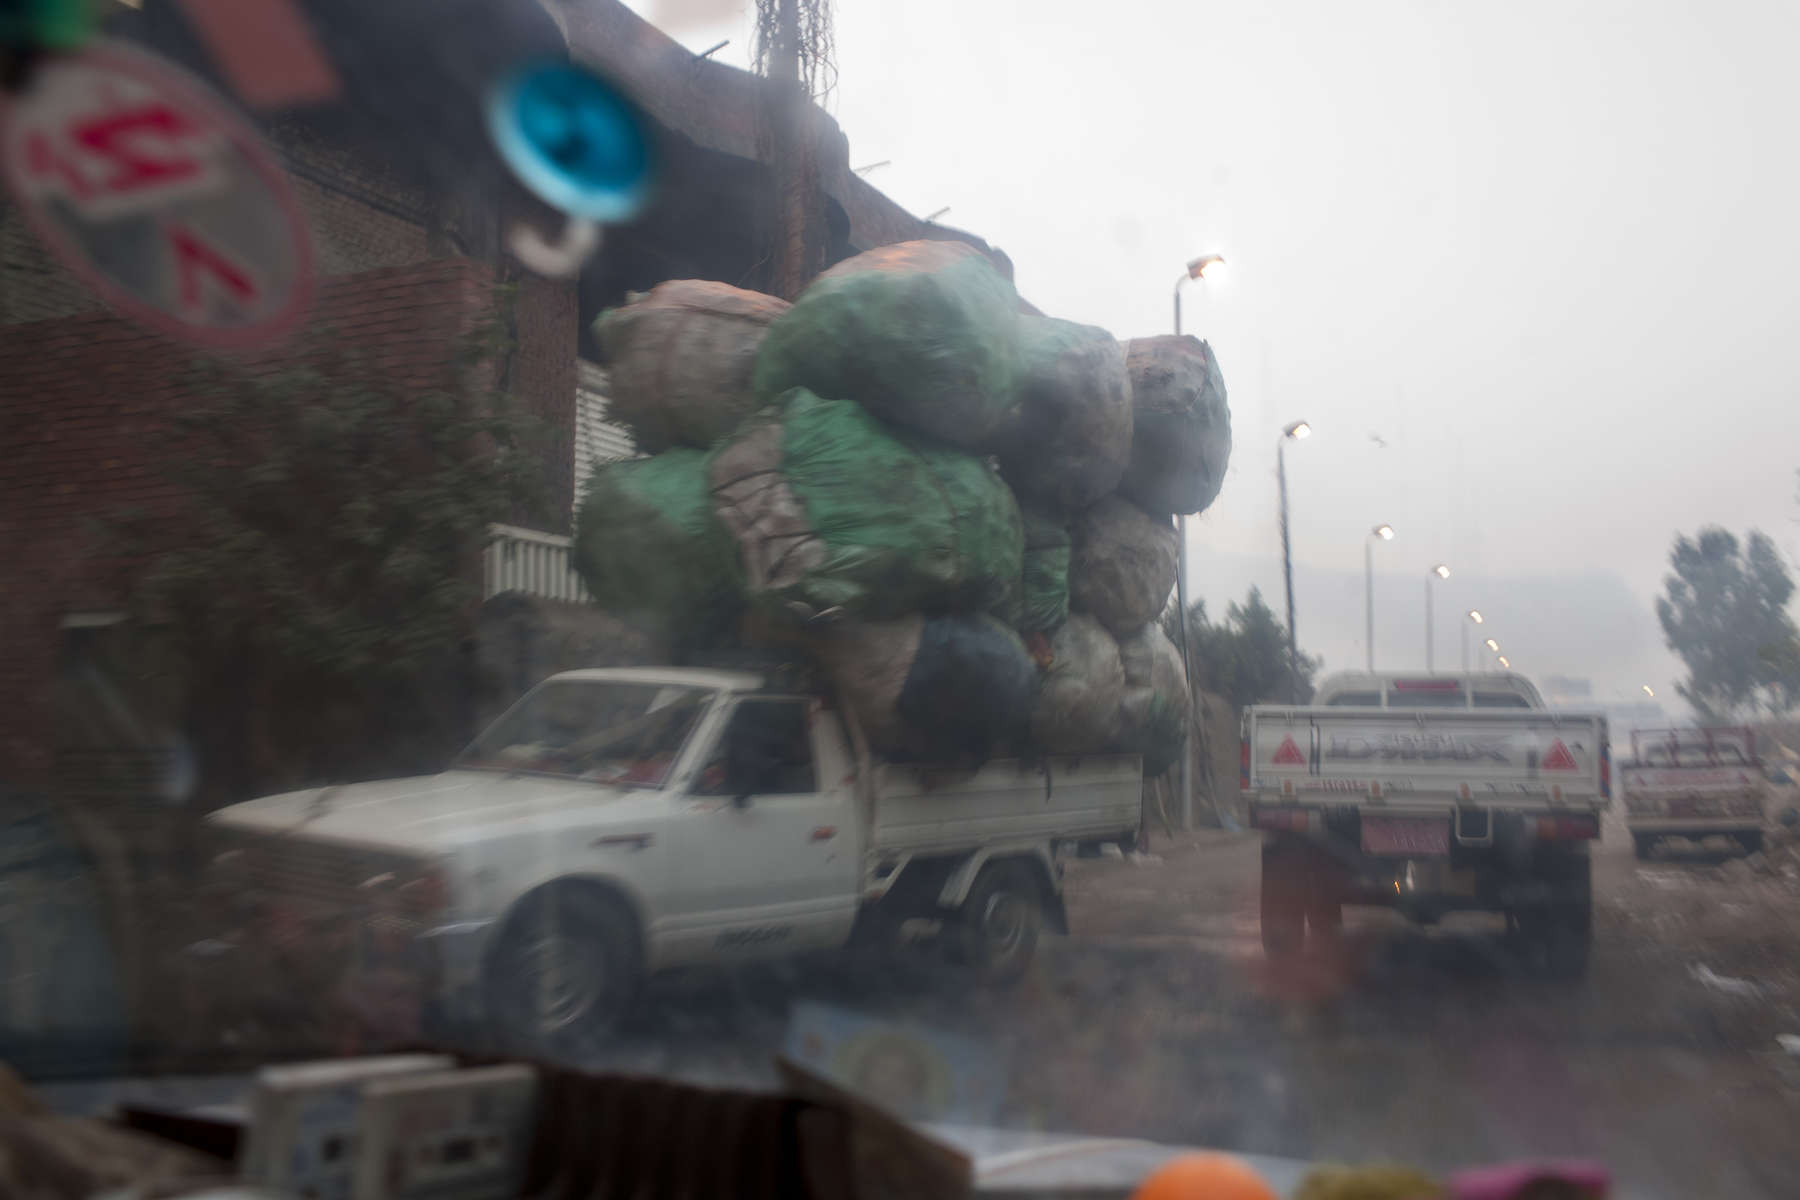 "A truck heads out from Moqqatam on a morning shift to collect garbage.Moqqatam is a suburb on the edge of Cairo and home to a people known as the Zabaleen, said to be the world's greatest waste recyclers. The Zabaleen, which means plainly enough, ""the garbage collectors"", pick up around 4,000 tons of Cairo's waste each day. American researchers have shown that the Zabaleen recycle 85% of this garbage into something useful: a higher rate than anywhere else on the planet. The men do two shifts leaving about 4am and again around 9am. The rubbish is taken back to Moqqatam for the women to sit in and sort through. The organic waste is fed to livestock (the Zabaleen are originally swine herders), the rest sorted for recycling. The future of the Zabaleen is uncertain: if the Cairo authorities get their way, this community of around 25,000 Coptic Christians living in a Muslim country will be gone, and with it, their unique lifestyle."